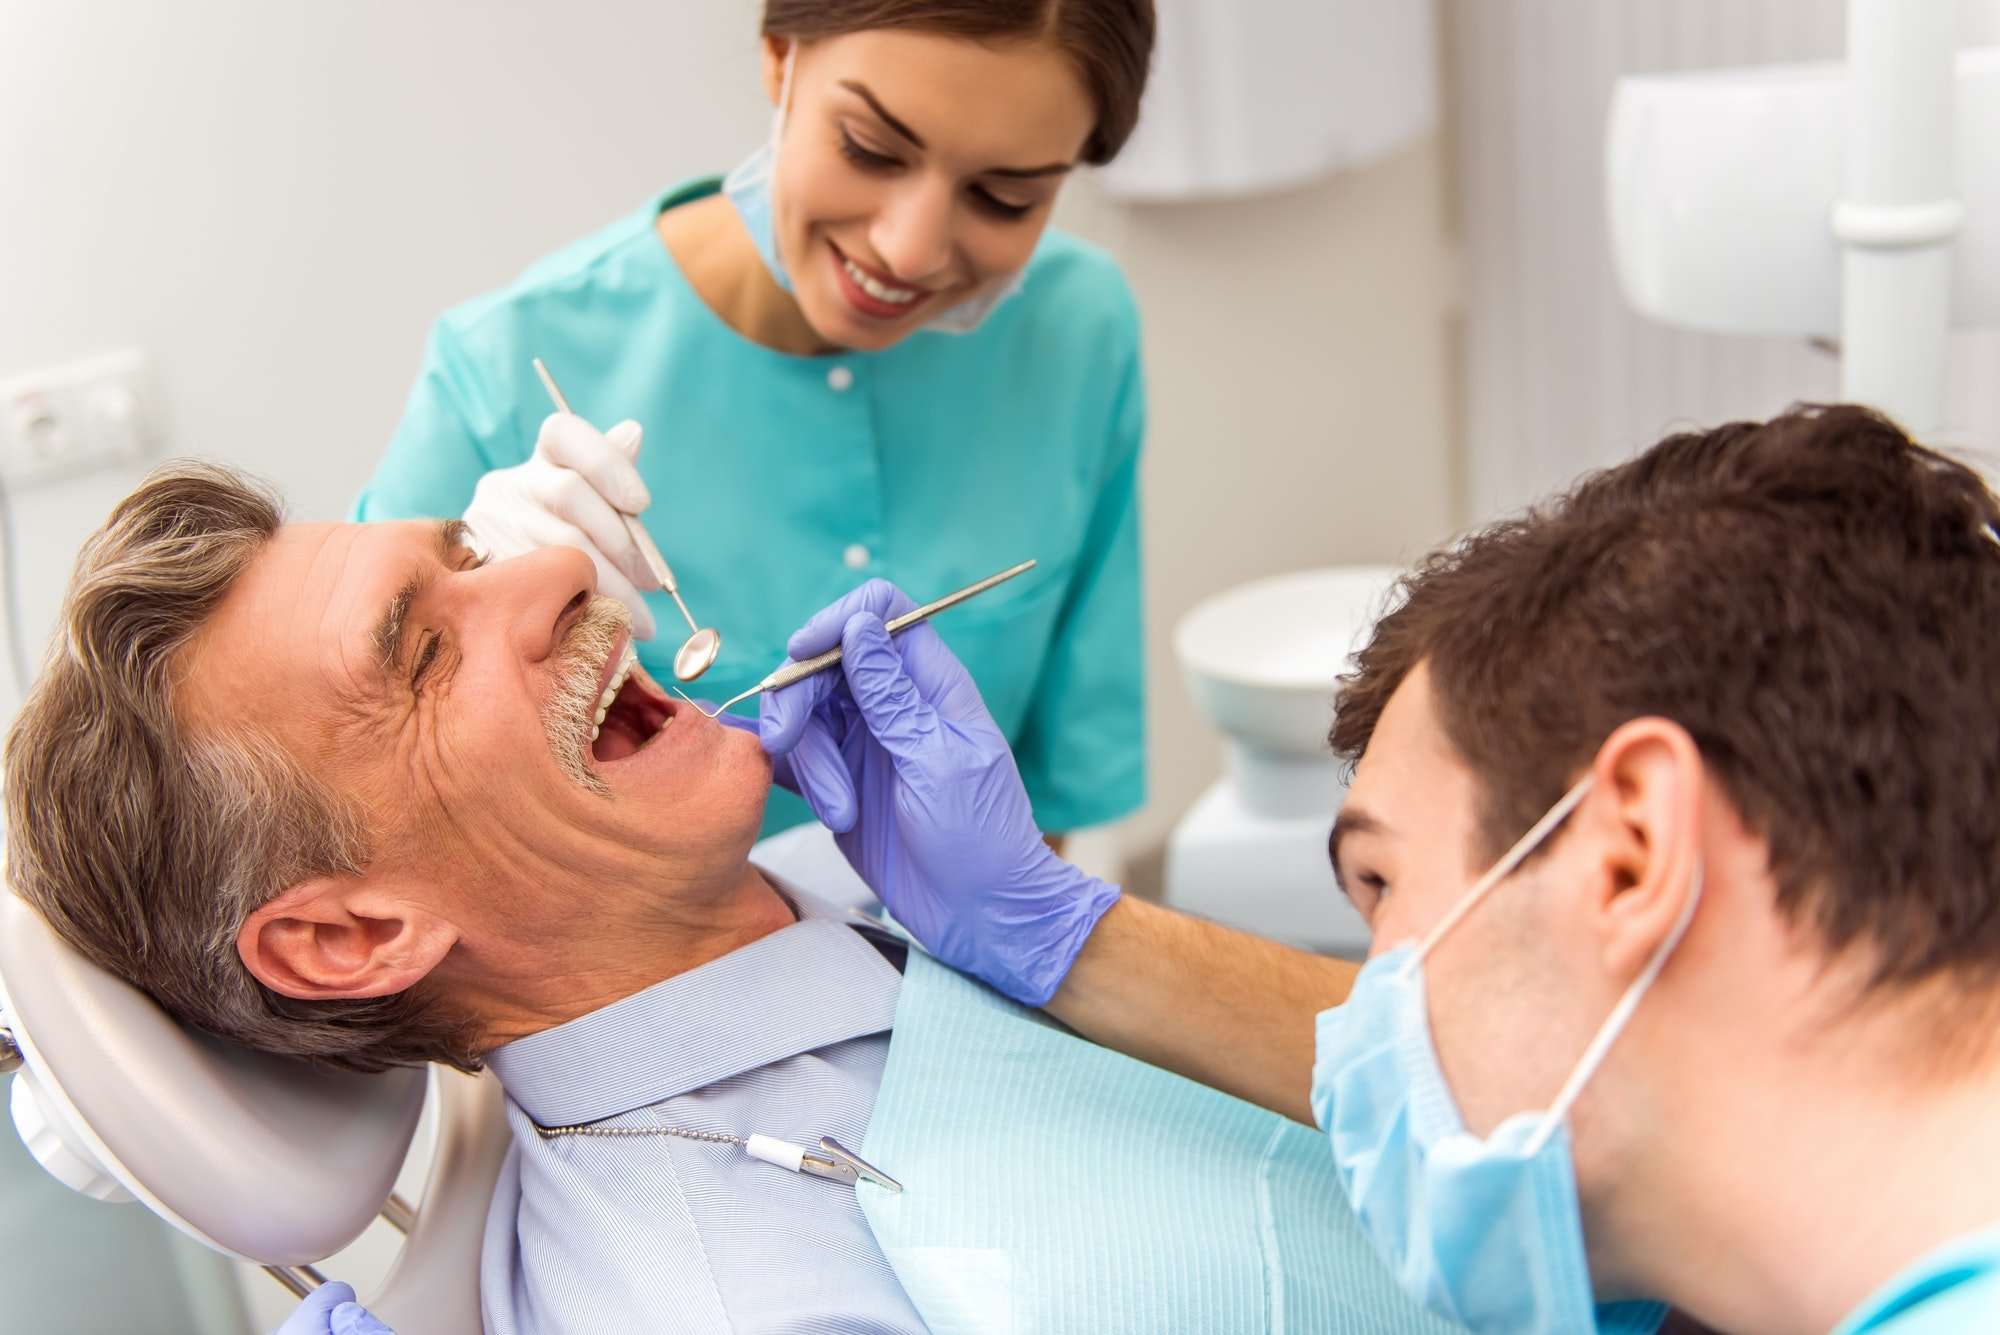 The top solution to losing teeth at 40 dental implants